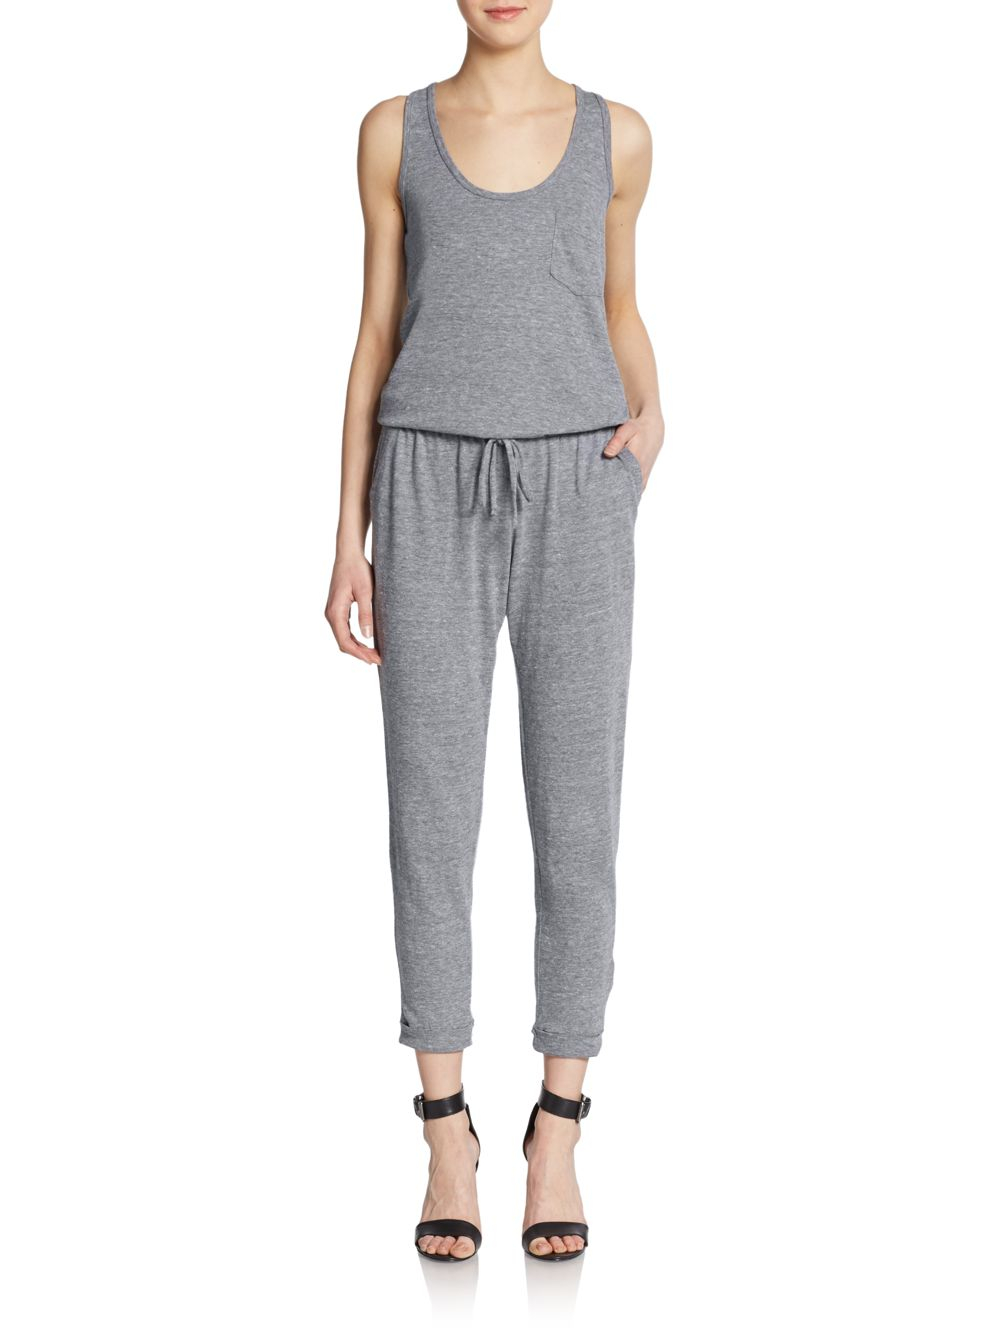 8117e318a65 Lyst - C C California Jersey Knit Jumpsuit in Gray